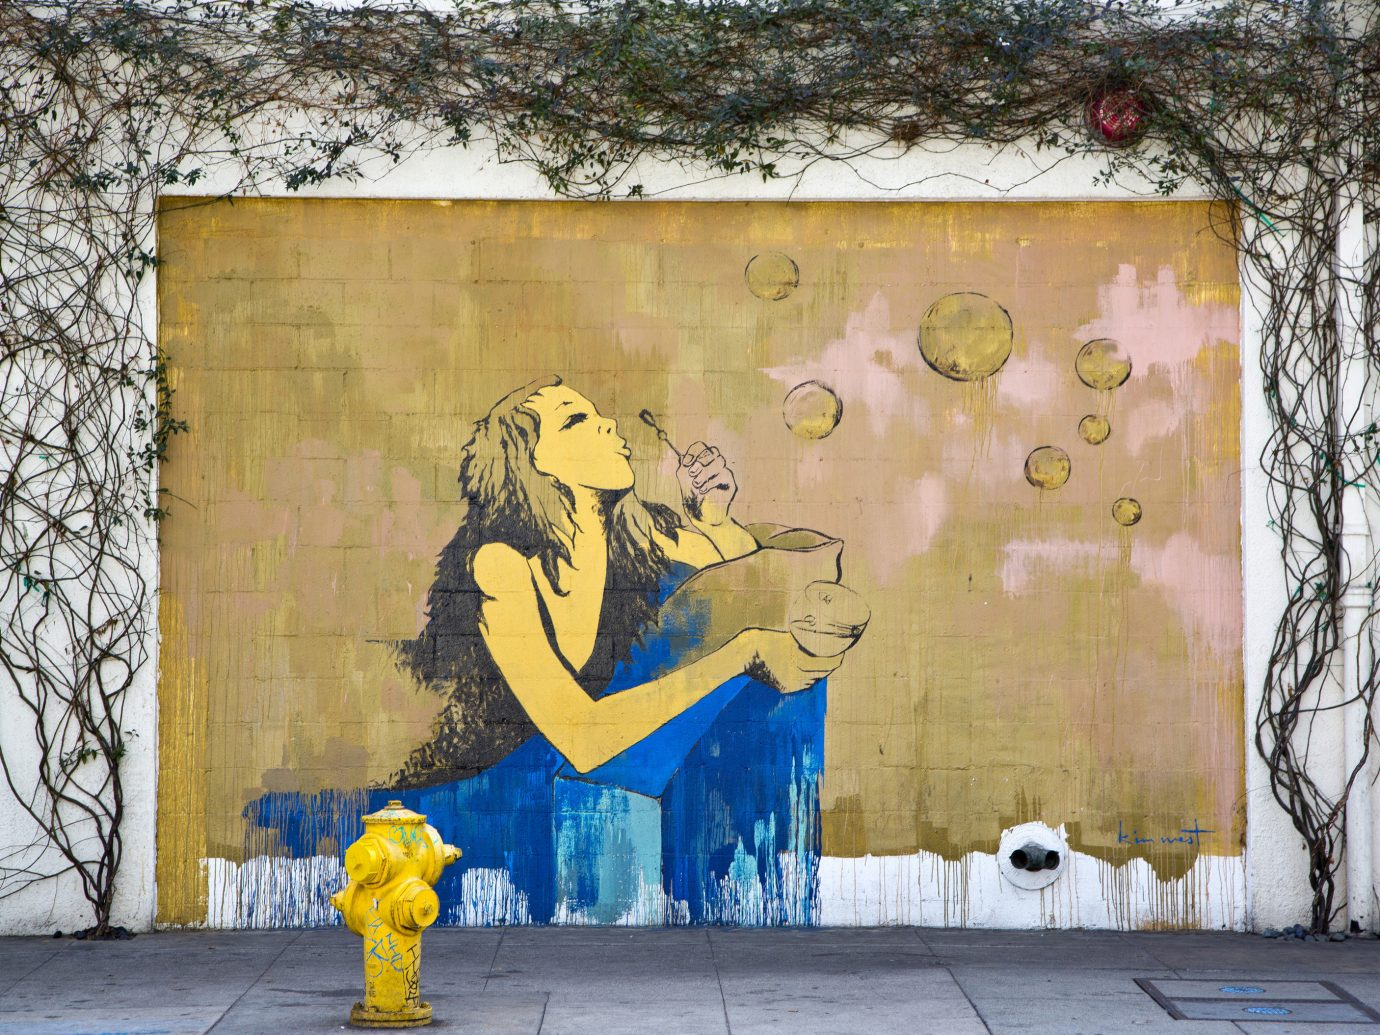 Trip Ideas tree outdoor color yellow hydrant mural wall urban area art graffiti street art road street painting painted